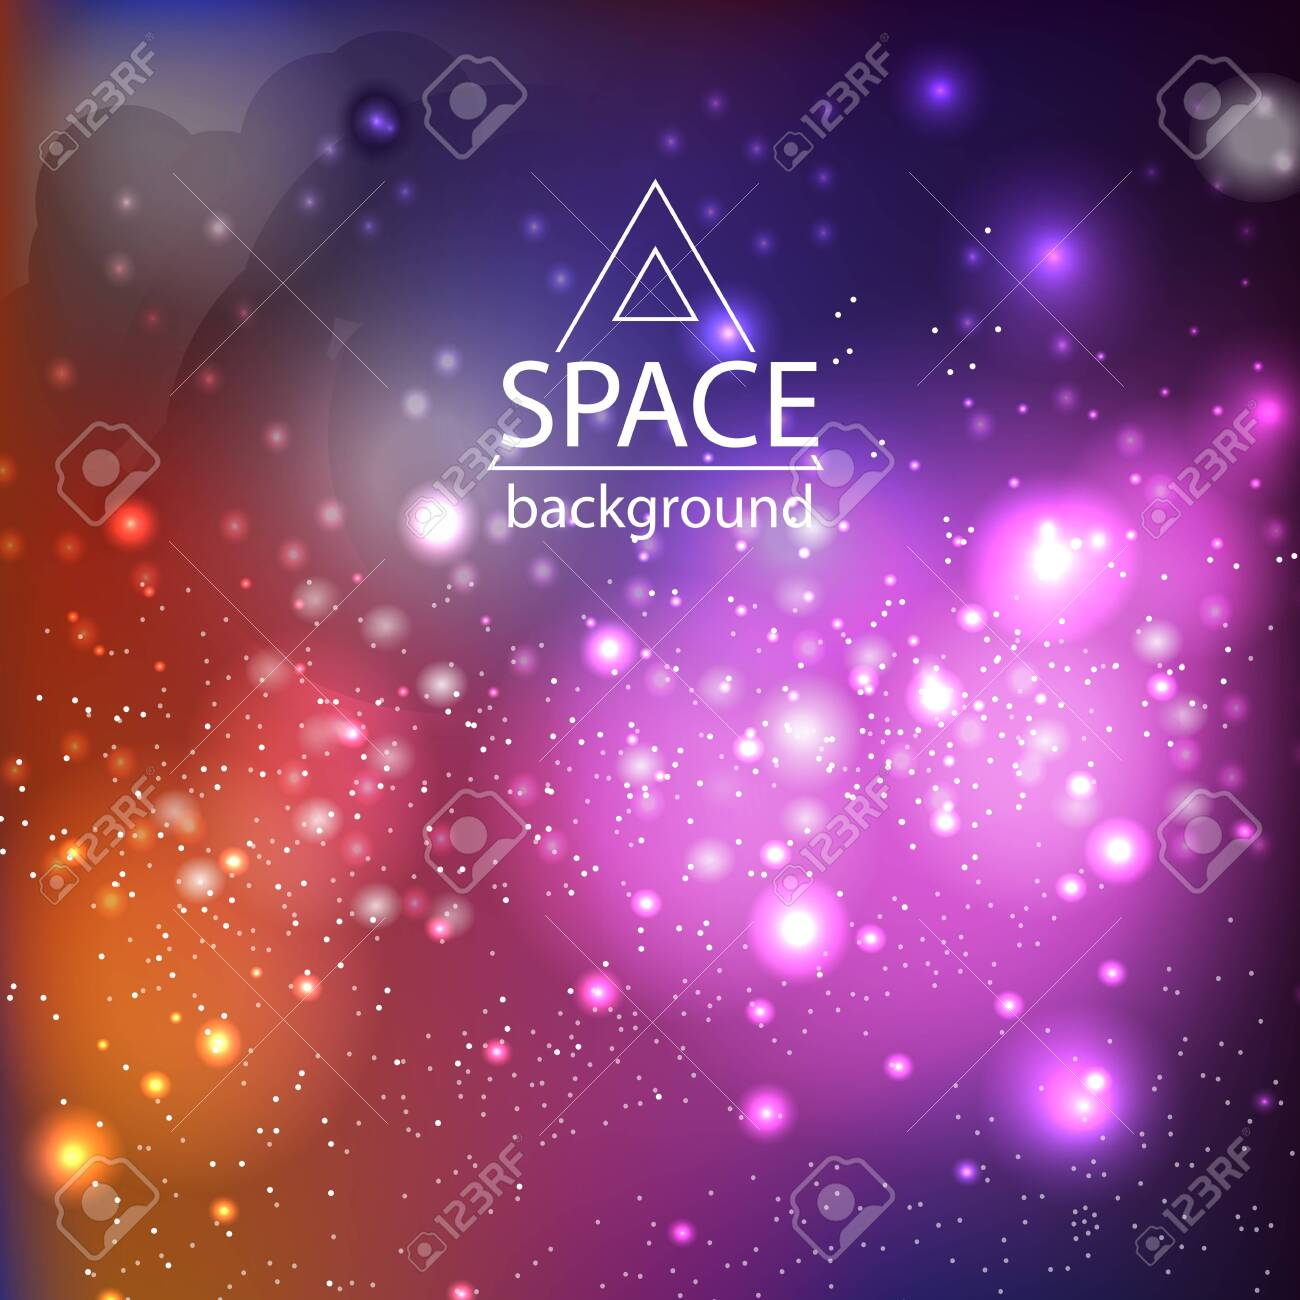 Abstract space galaxy background with cosmic light and stars - 135404272